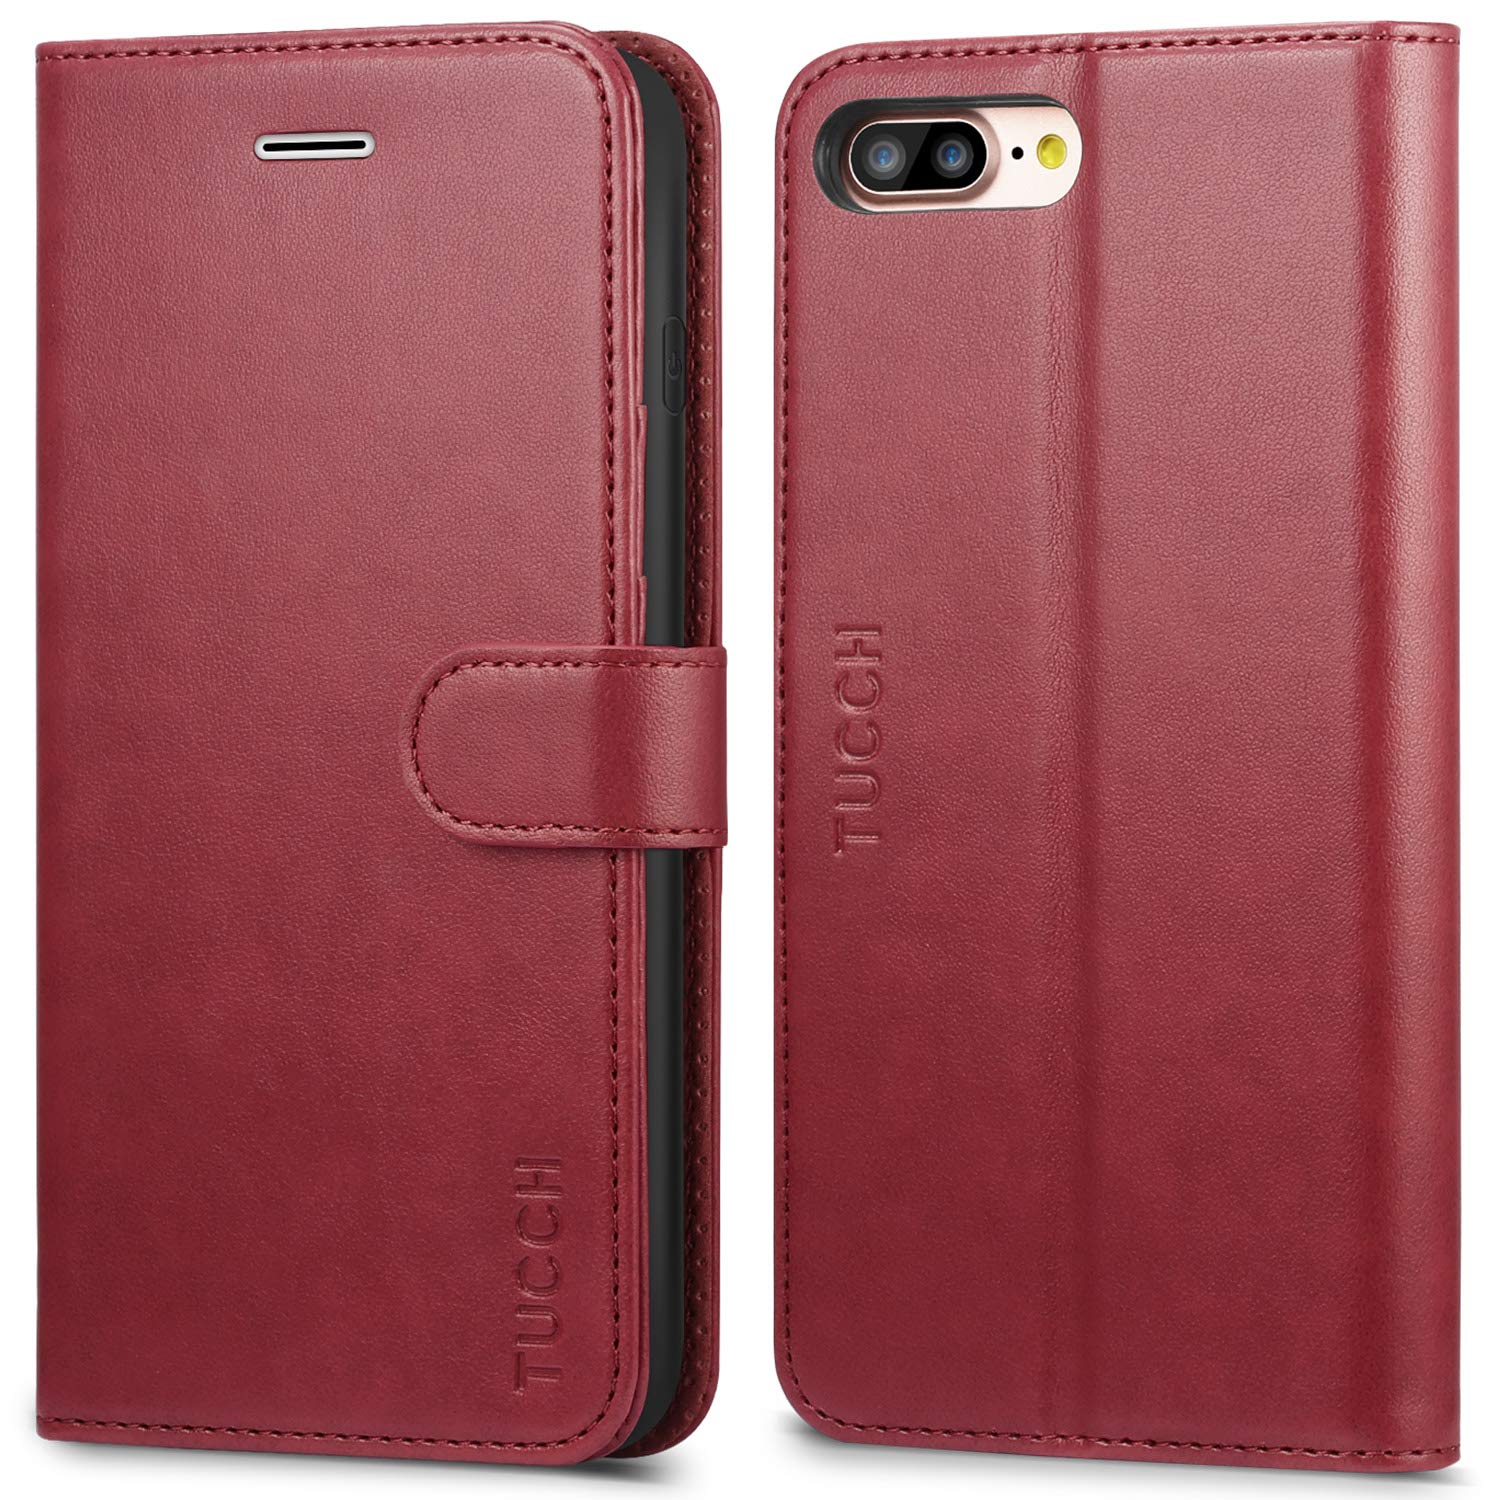 competitive price c2579 3bbd3 TUCCH iPhone 8 Plus Wallet Case, iPhone 7 Plus Case [Card Slot] Leather  Flip Wallet Phone Case for iPhone 8 Plus / 7 Plus (5.5 Inch), Red